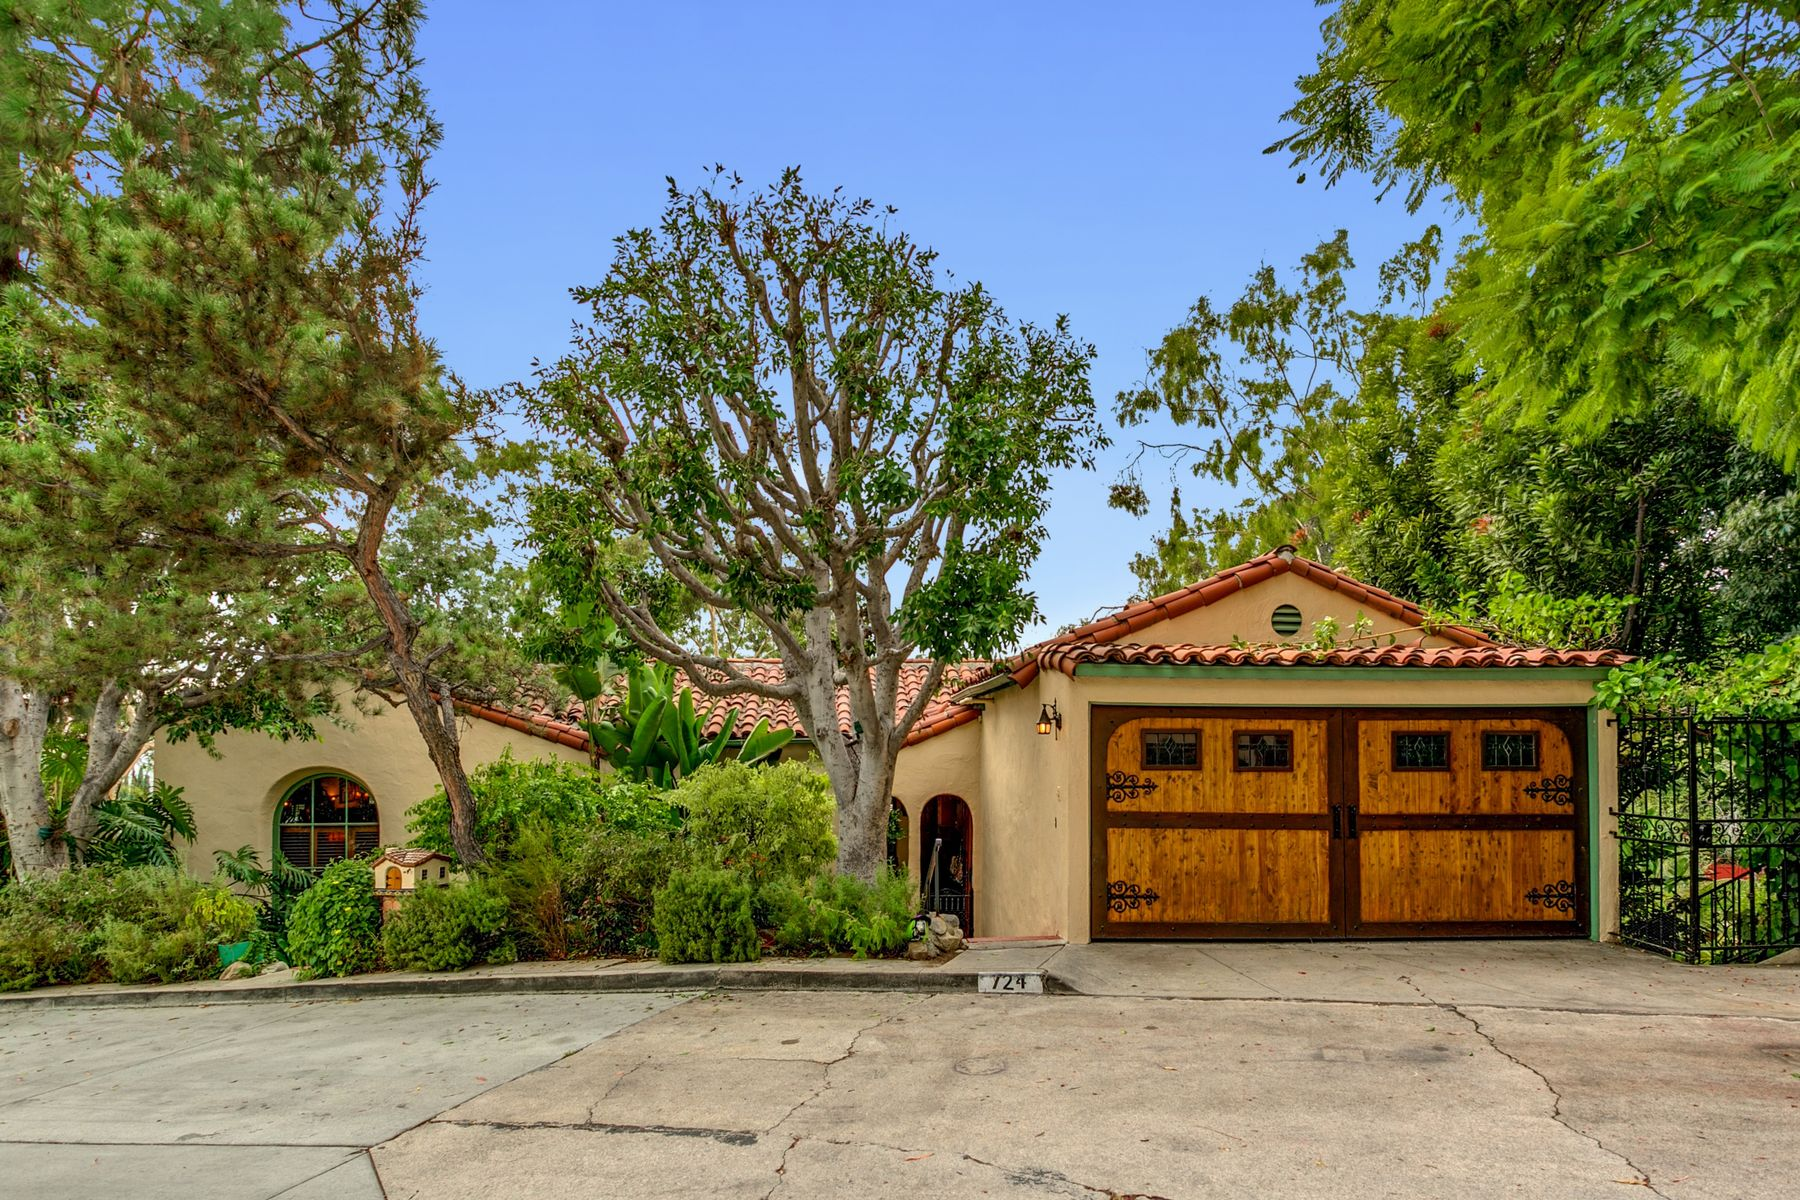 Single Family Homes for Sale at 724 Luton Drive Glendale, California 91206 United States